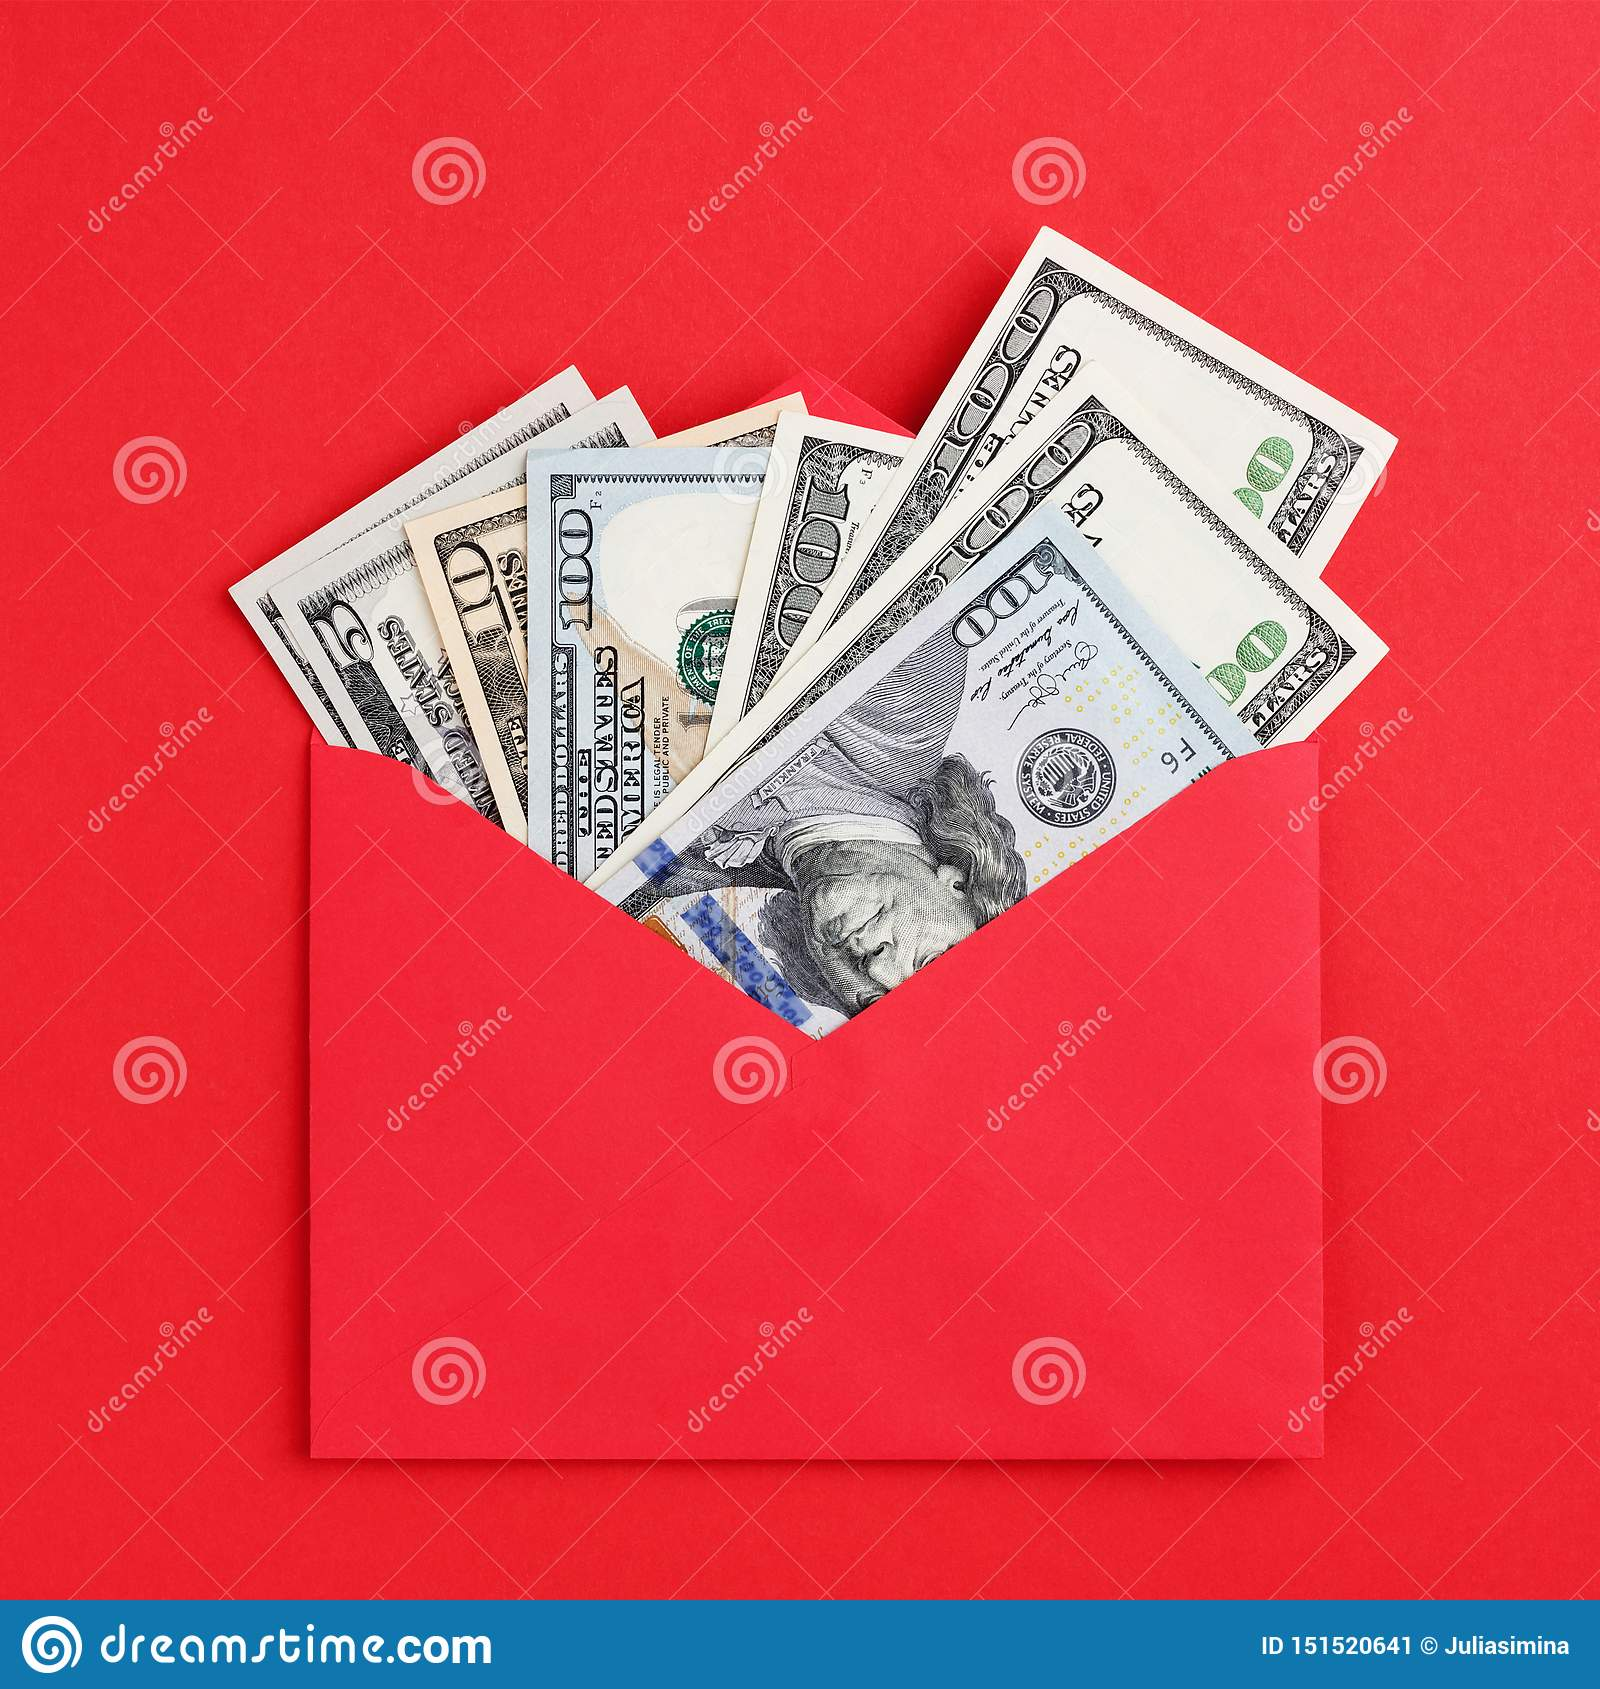 Red Red Hearts Cash Envelope